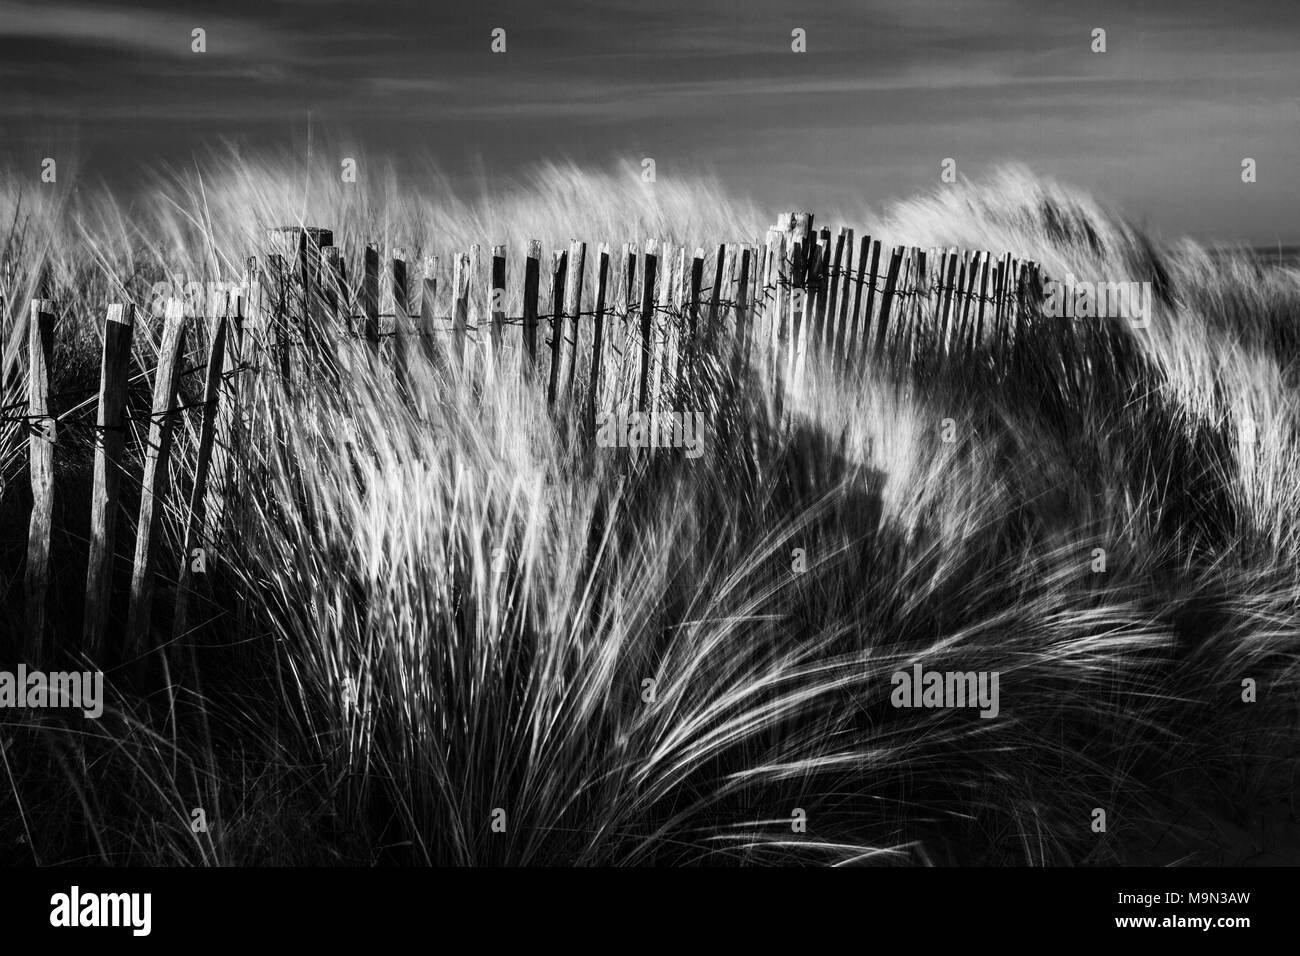 Sand Dunes at Greatstone Beach. South East England. - Stock Image